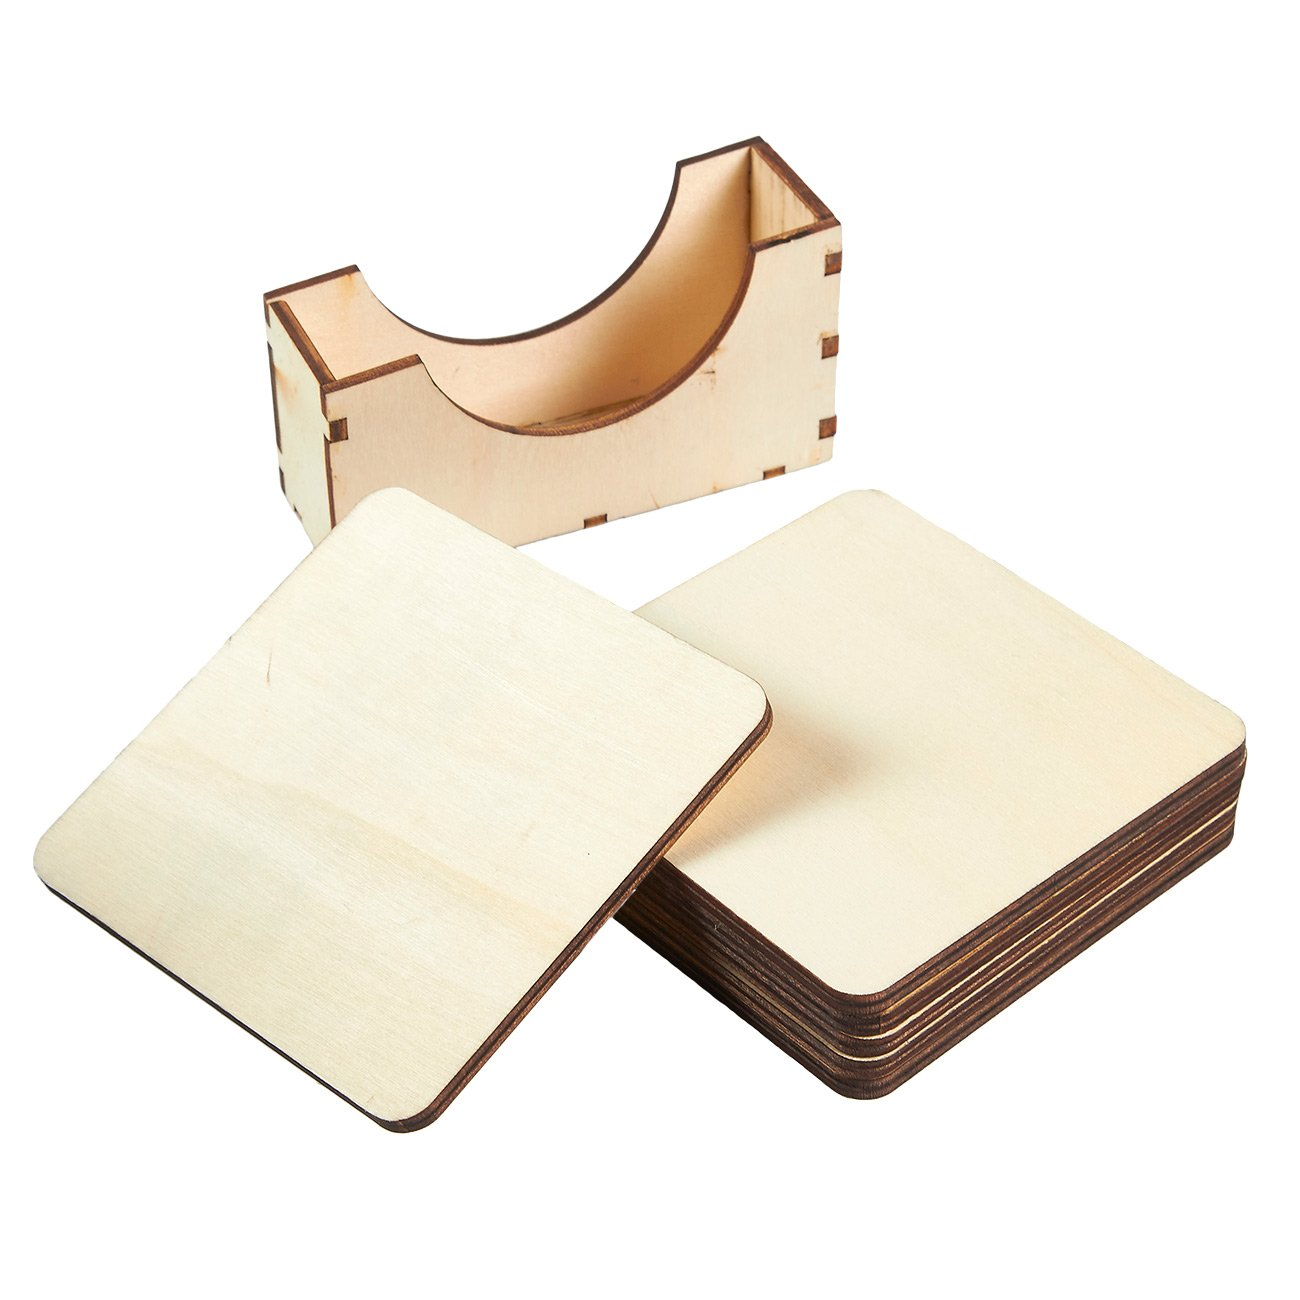 Wood Coasters - 6-Pack Square Wooden Drink Coasters with Holder, Unfinished Wood Cup Coasters for Home Kitchen, Office Desk, 3.875 x 3.875 x 0.188 Inches by Juvale (Image #1)